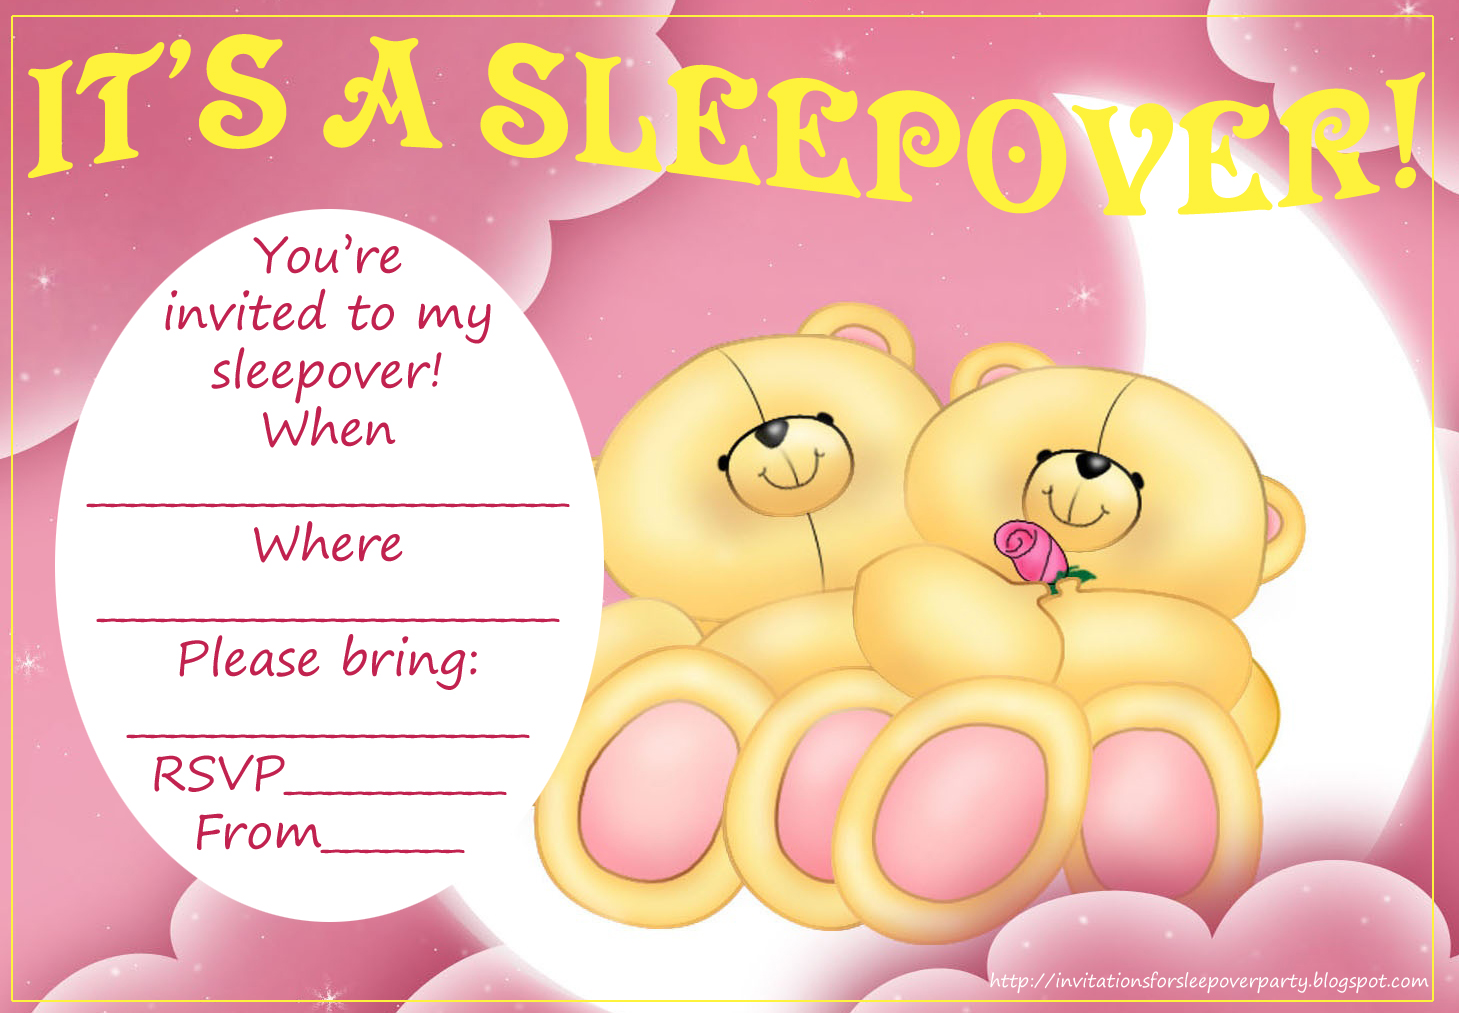 Teddy Bear Party Invitations For A Sleepover